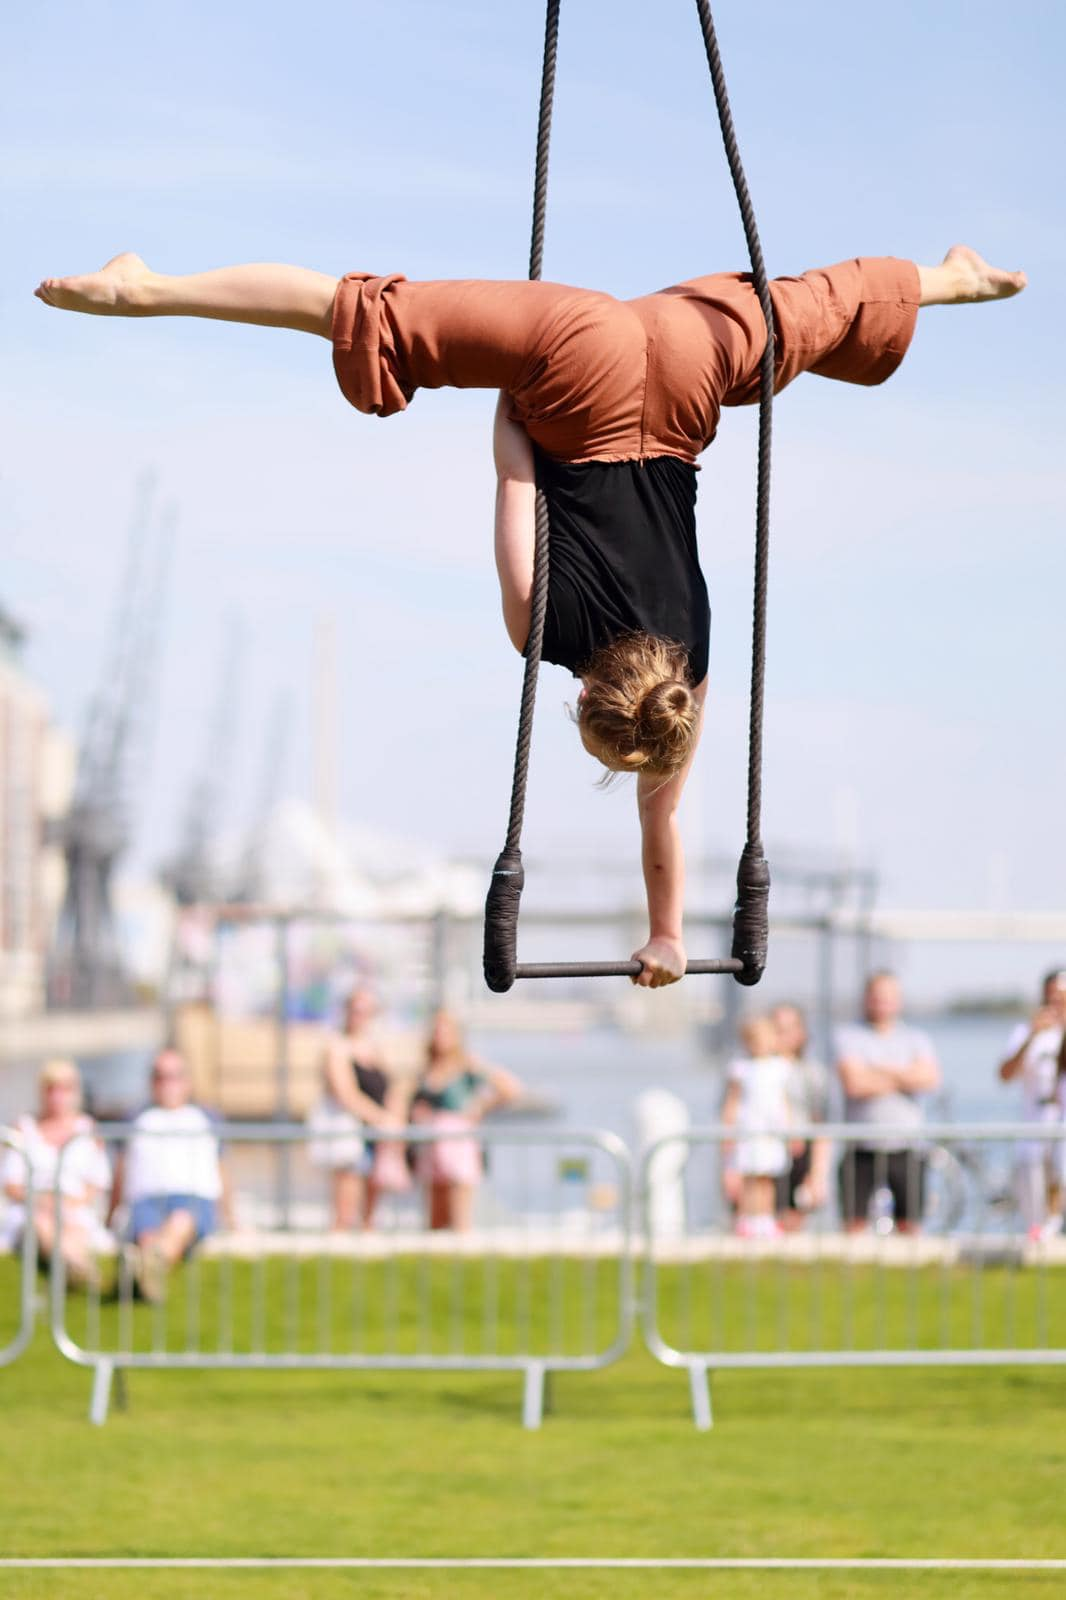 A circus performer supports themselves on a trapeze and performs the splits in the air while an audience watches.